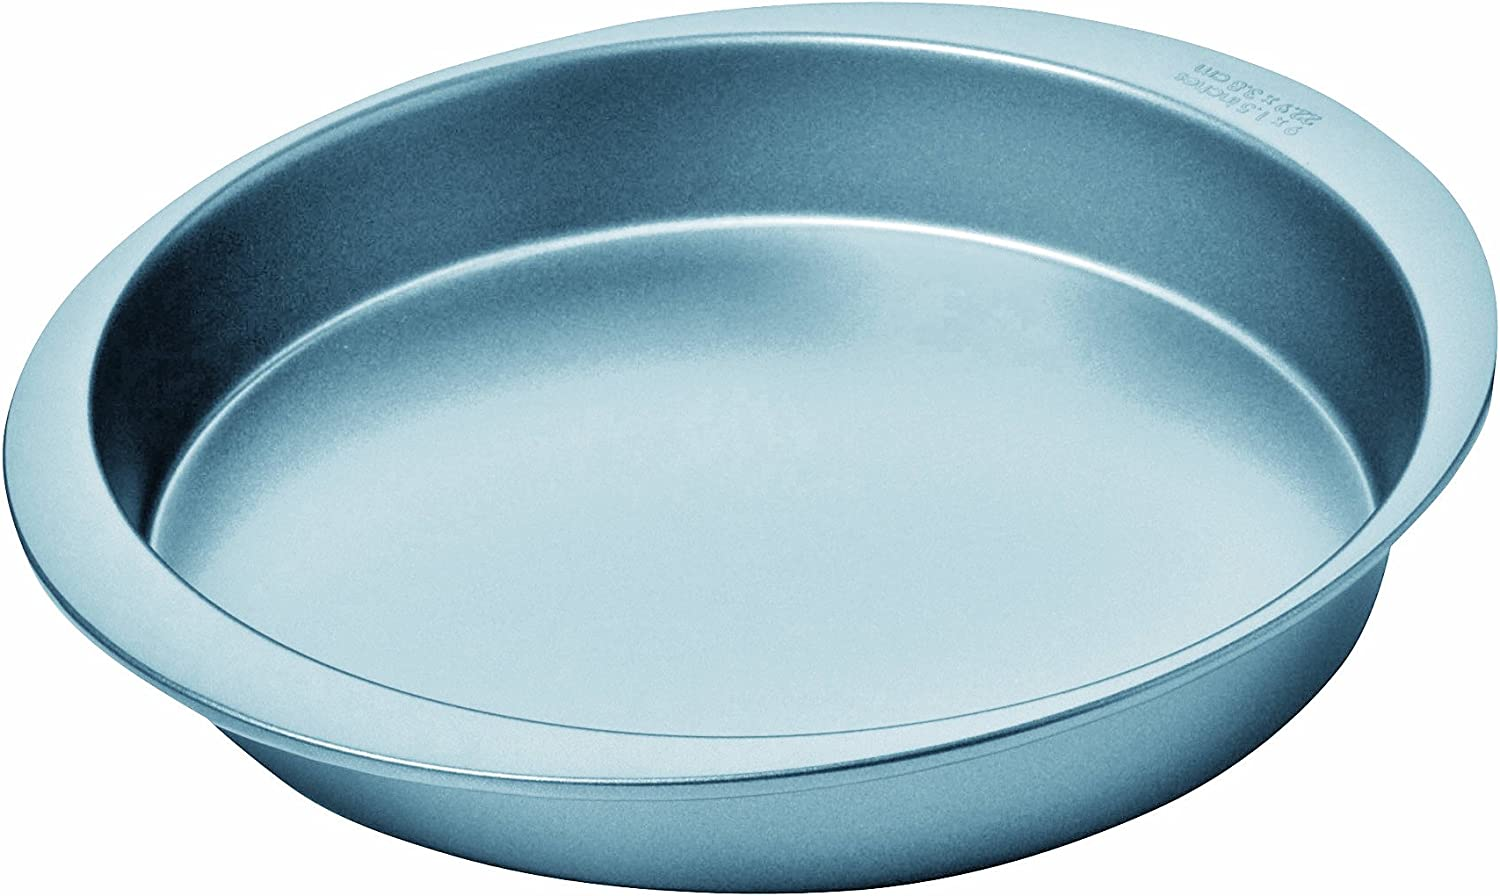 9 Inches Diameter OvenStuff Non-Stick Round Cake Pan Pack Of 2